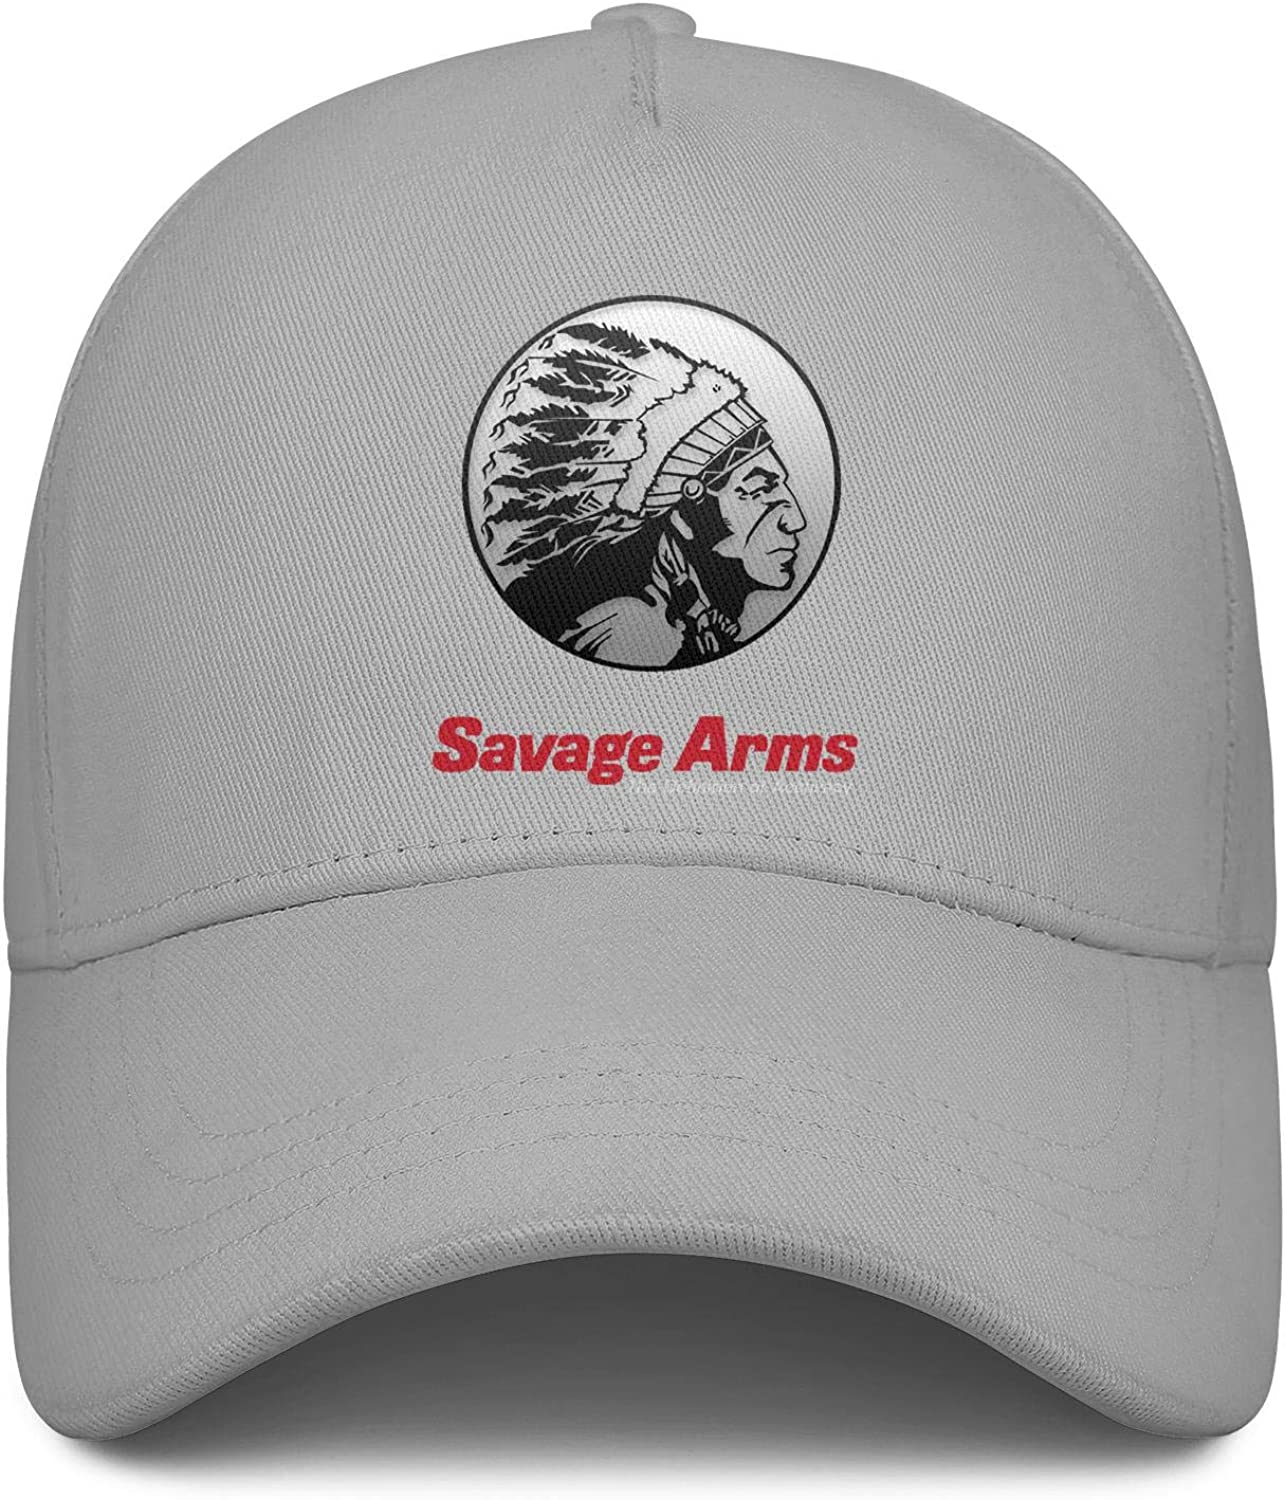 Hat for Mens Womens Dad Hat Adjustable Outdoor Shooting Hat Dance Hat Cap Heart Wolf Savage-arms-Logo